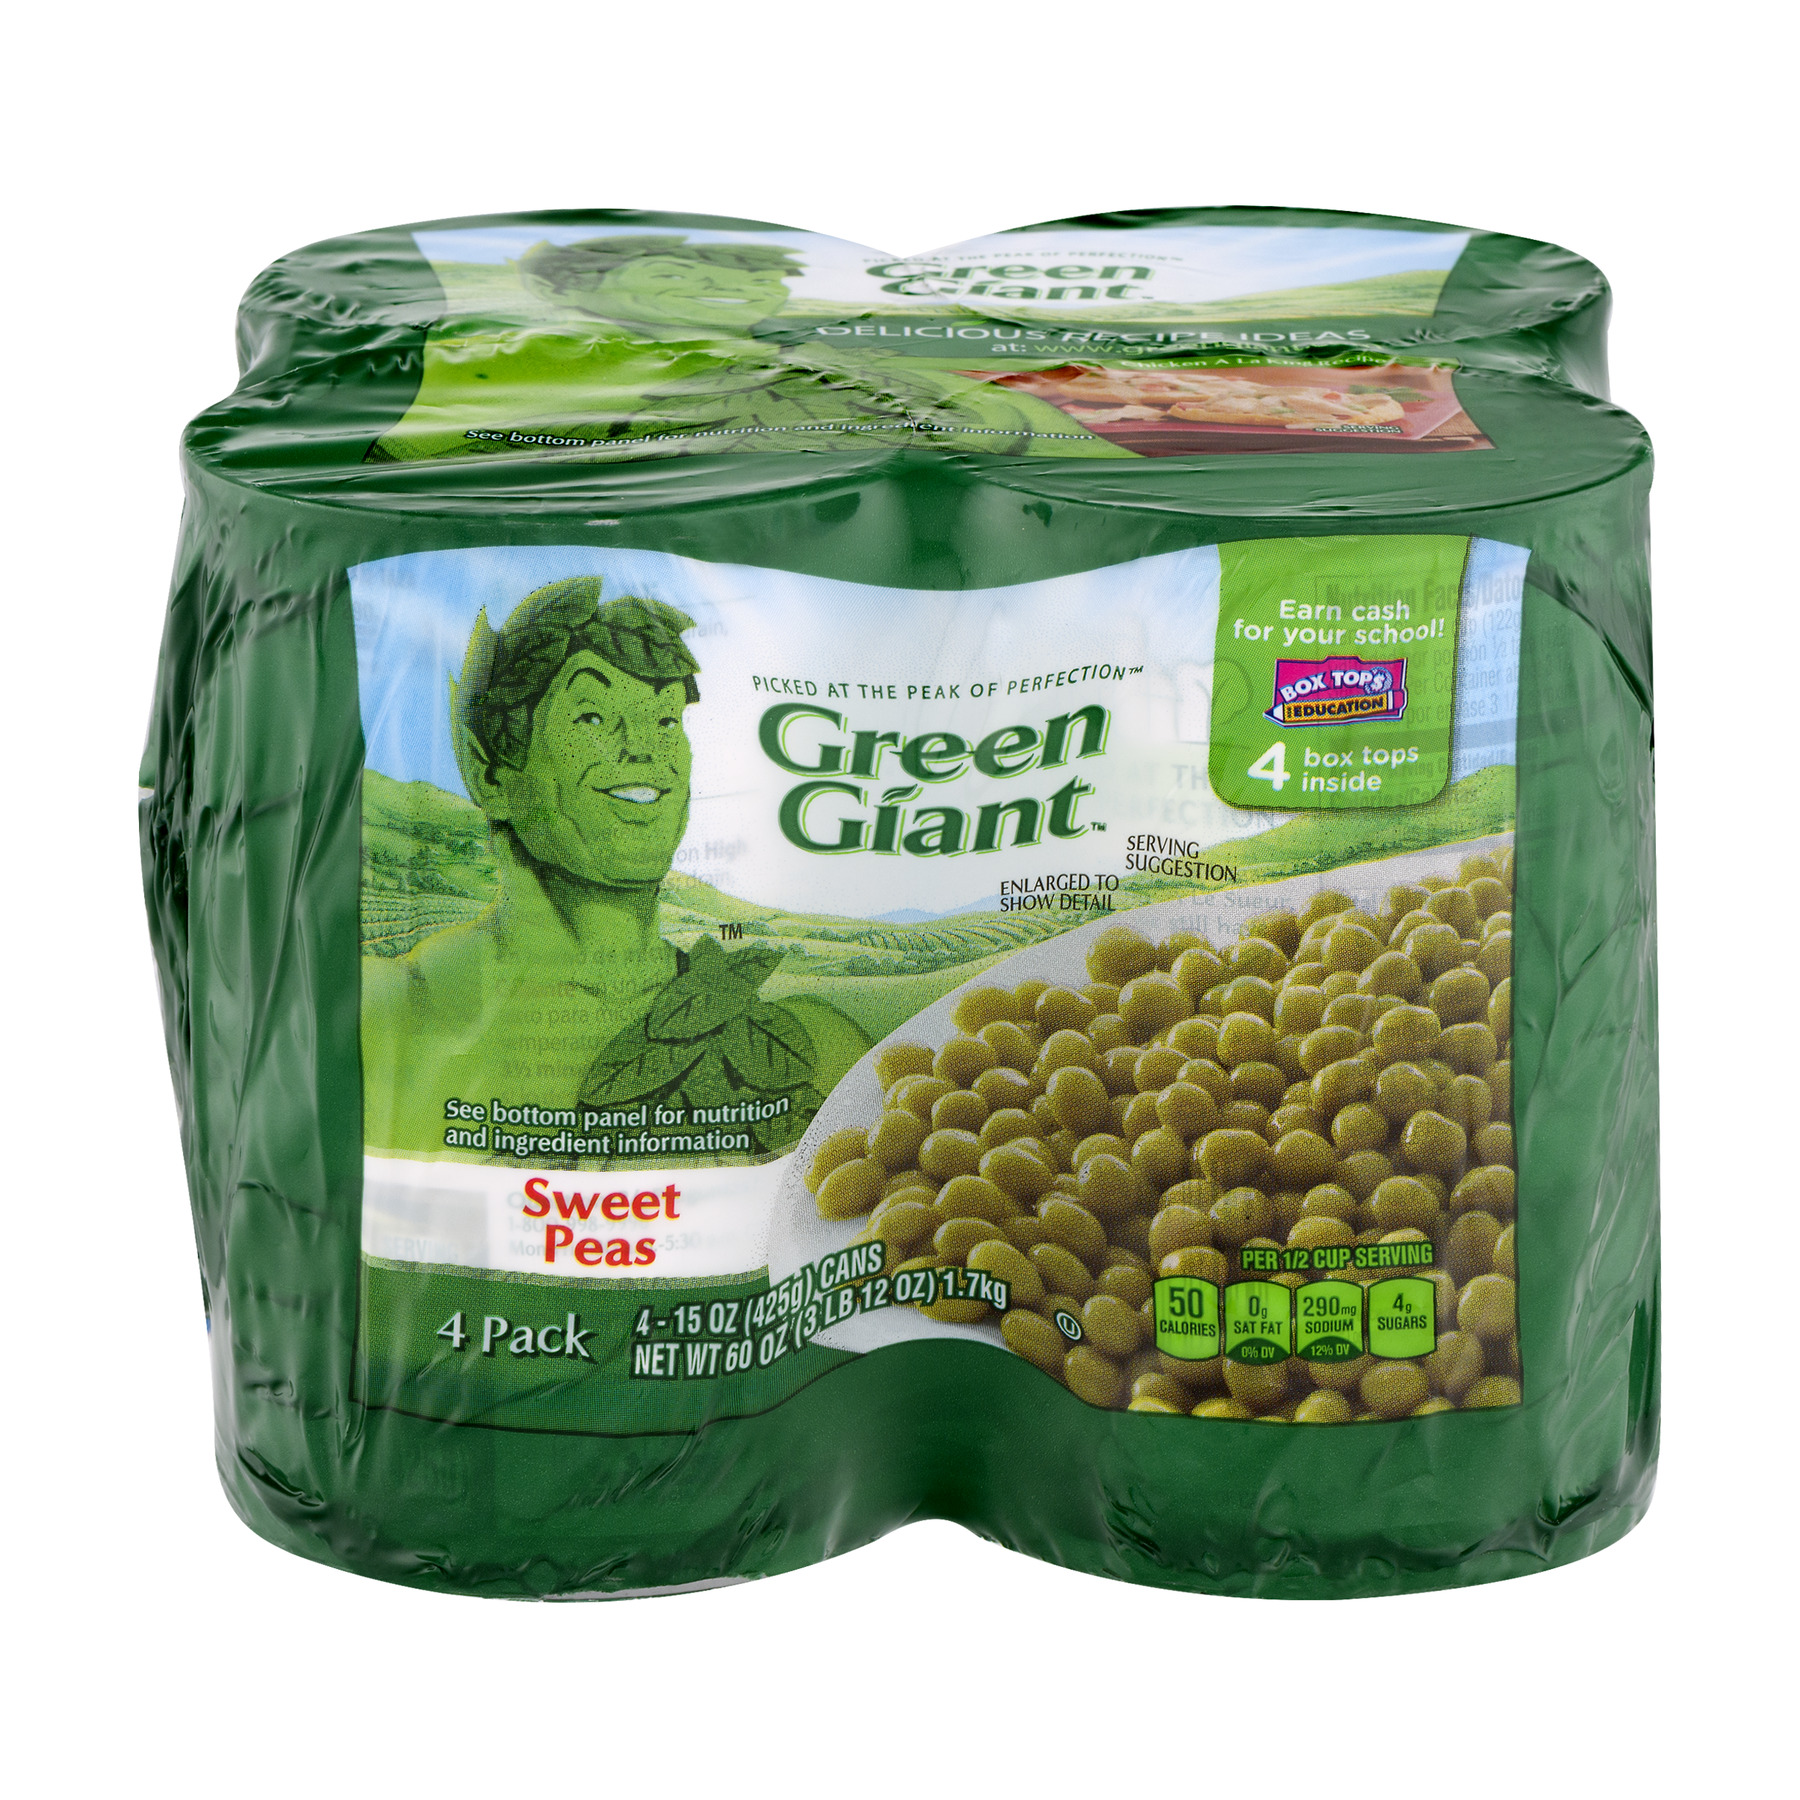 Green Giant Sweet Peas - 4 PK, 15.0 OZ